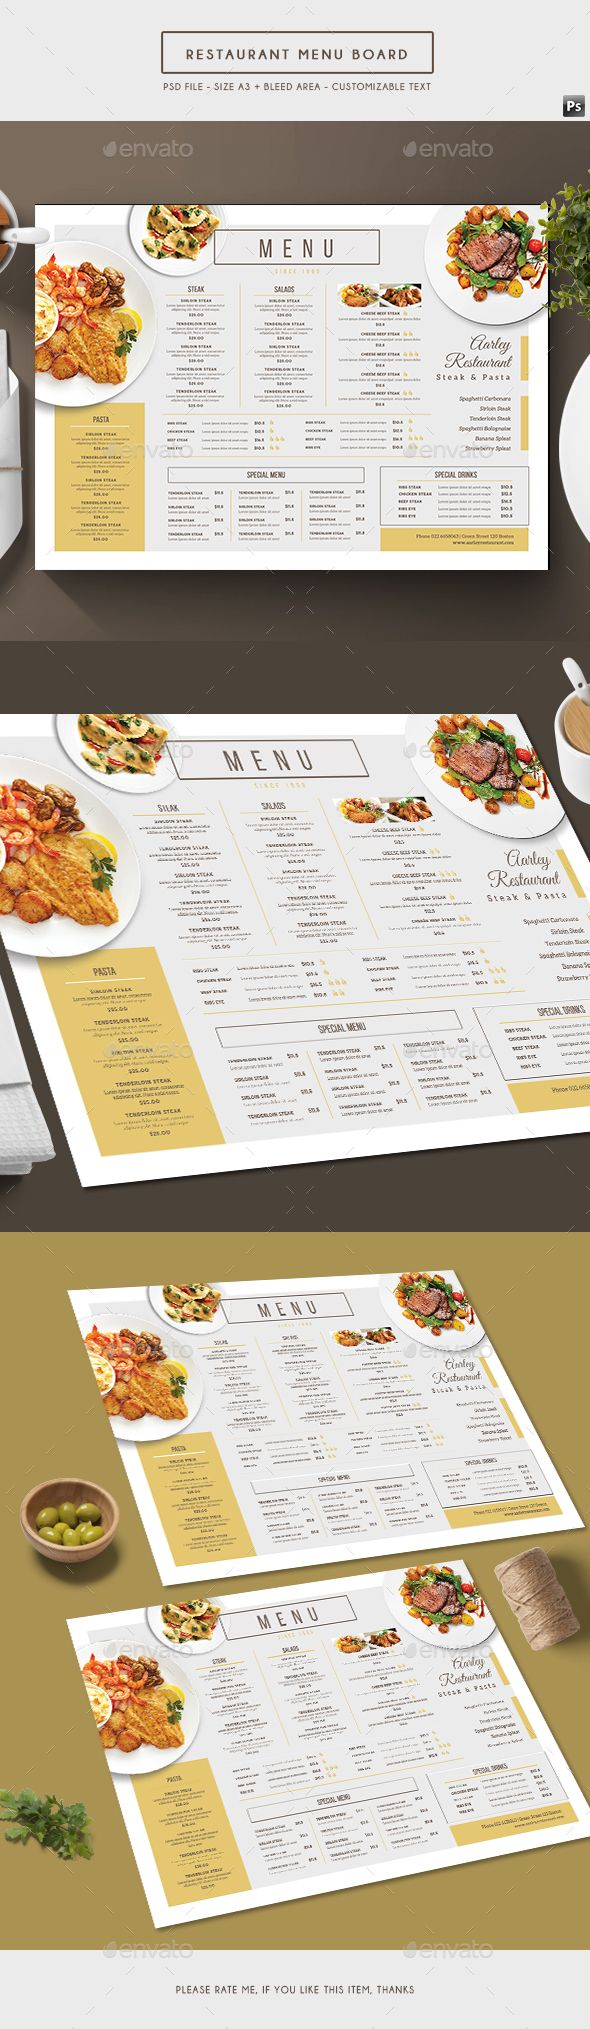 Simple Restaurant Menu Board 1382 best Graphic